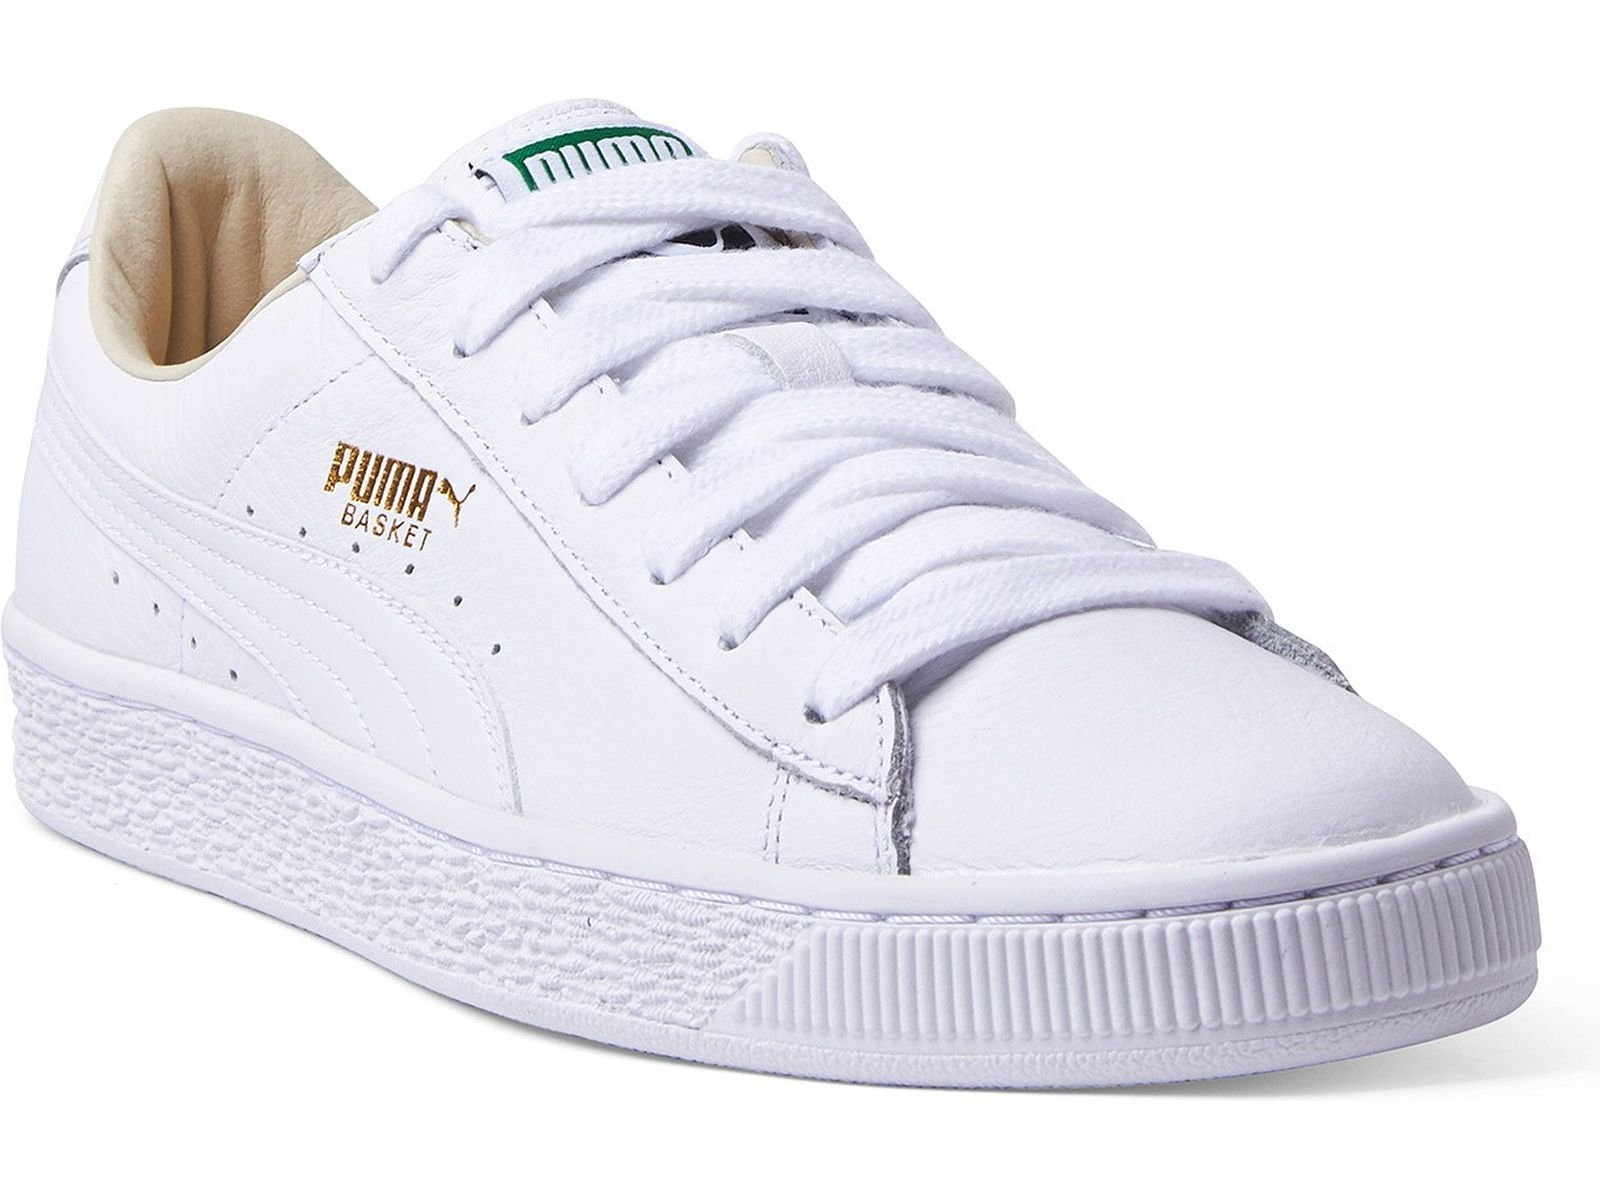 puma basketball shoes white